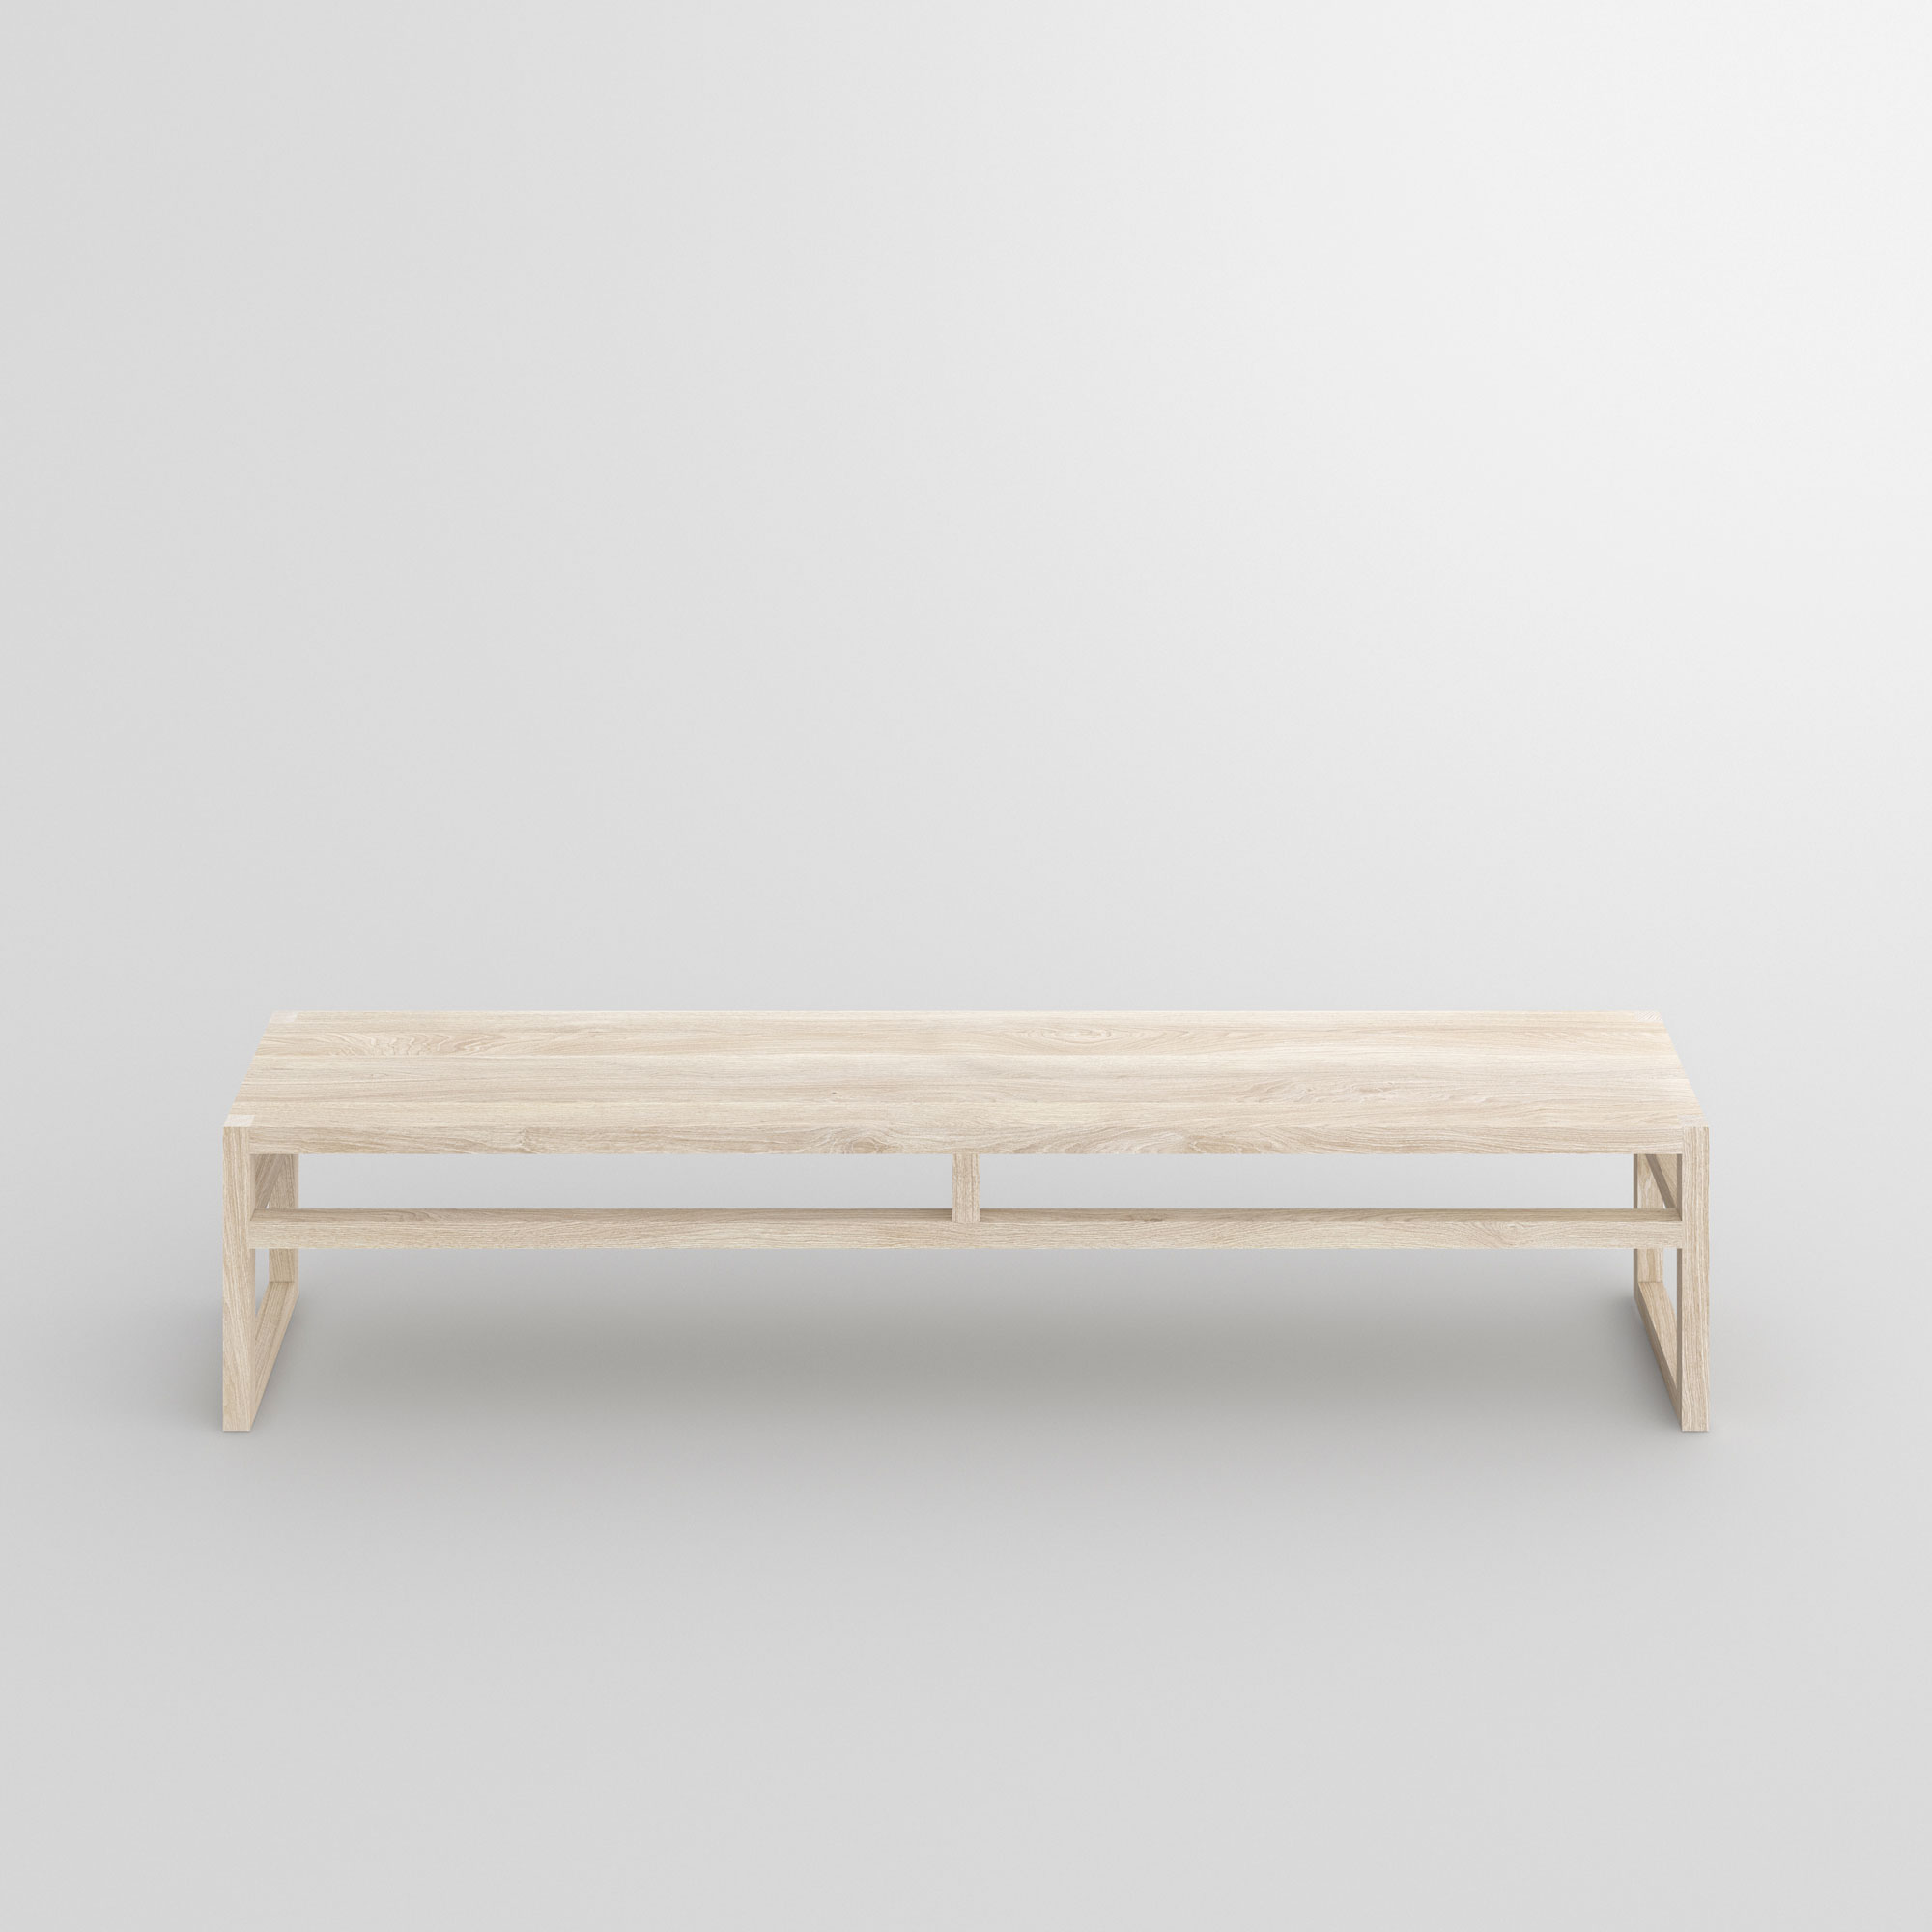 Dining Room Wood Bench SENA cam3 custom made in solid wood by vitamin design